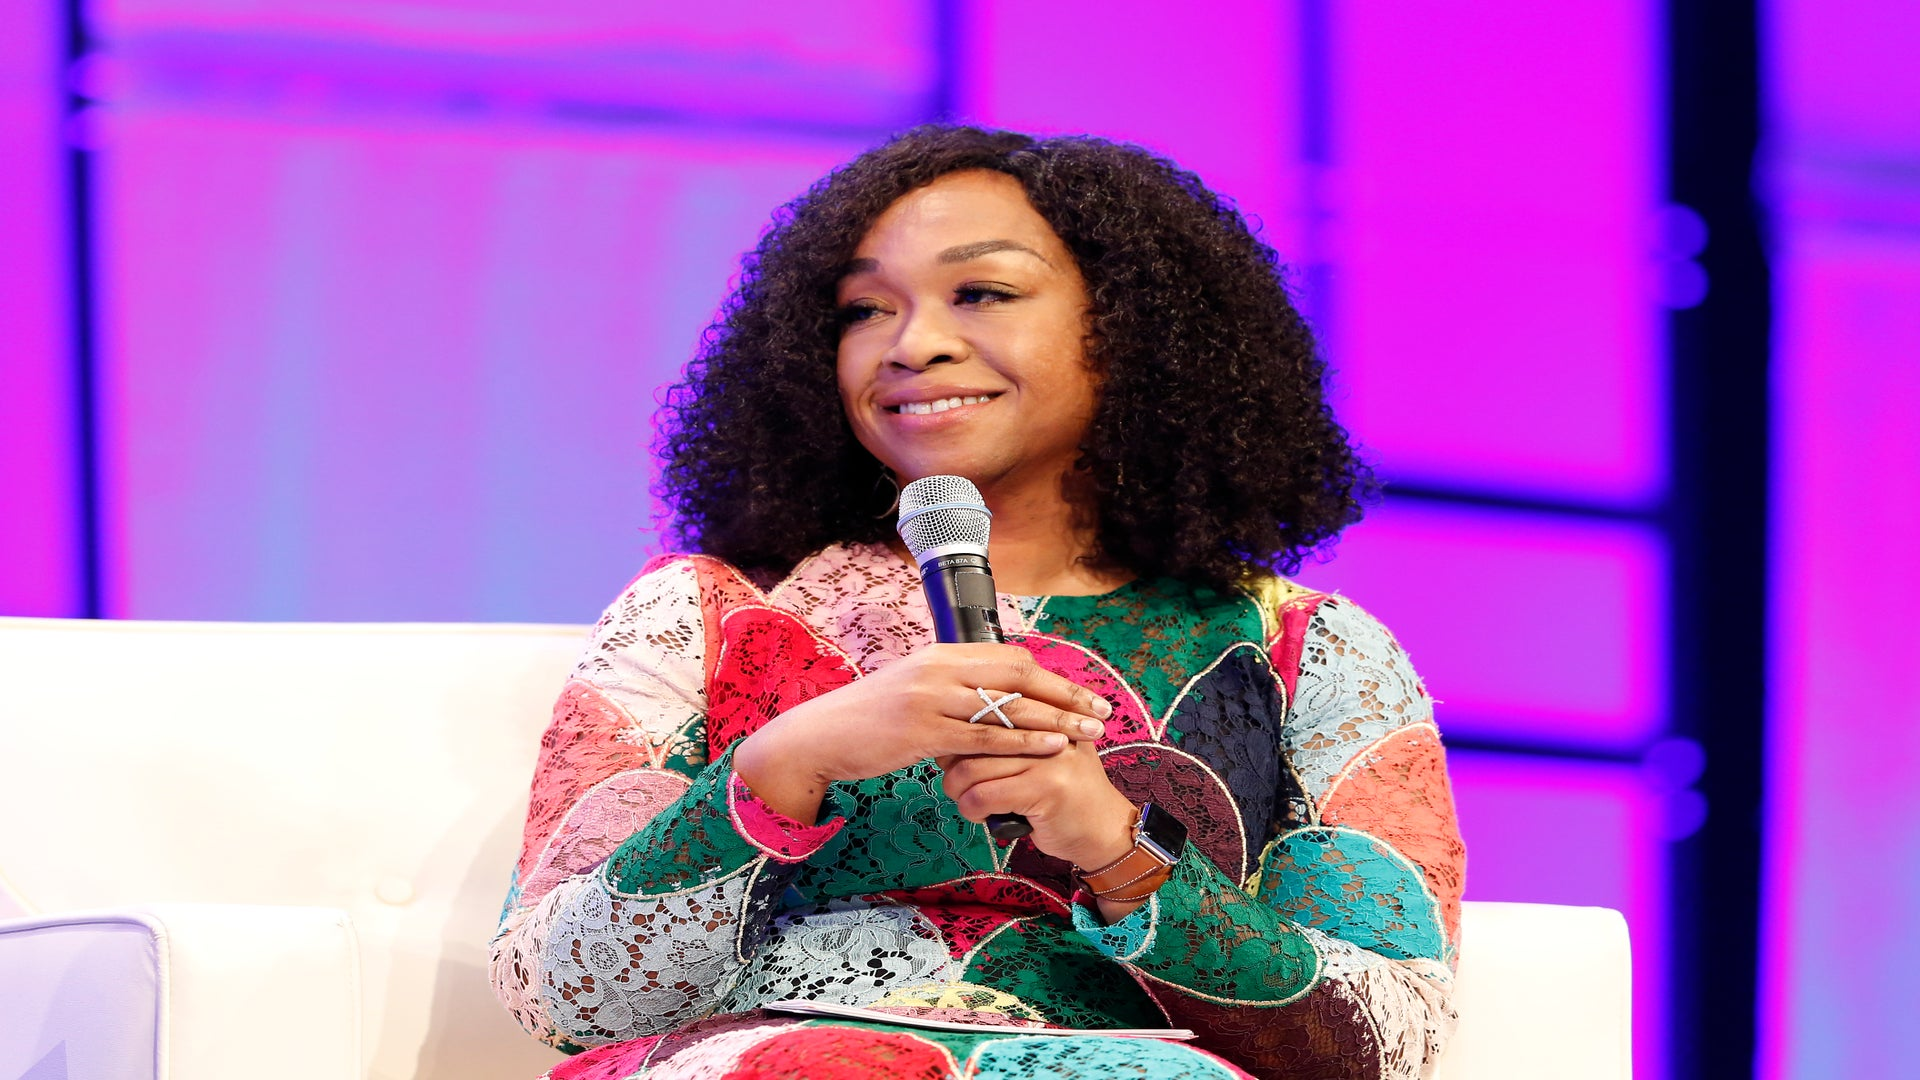 Shonda Rhimes Is The Third Black Woman Inducted To The Television Hall Of Fame